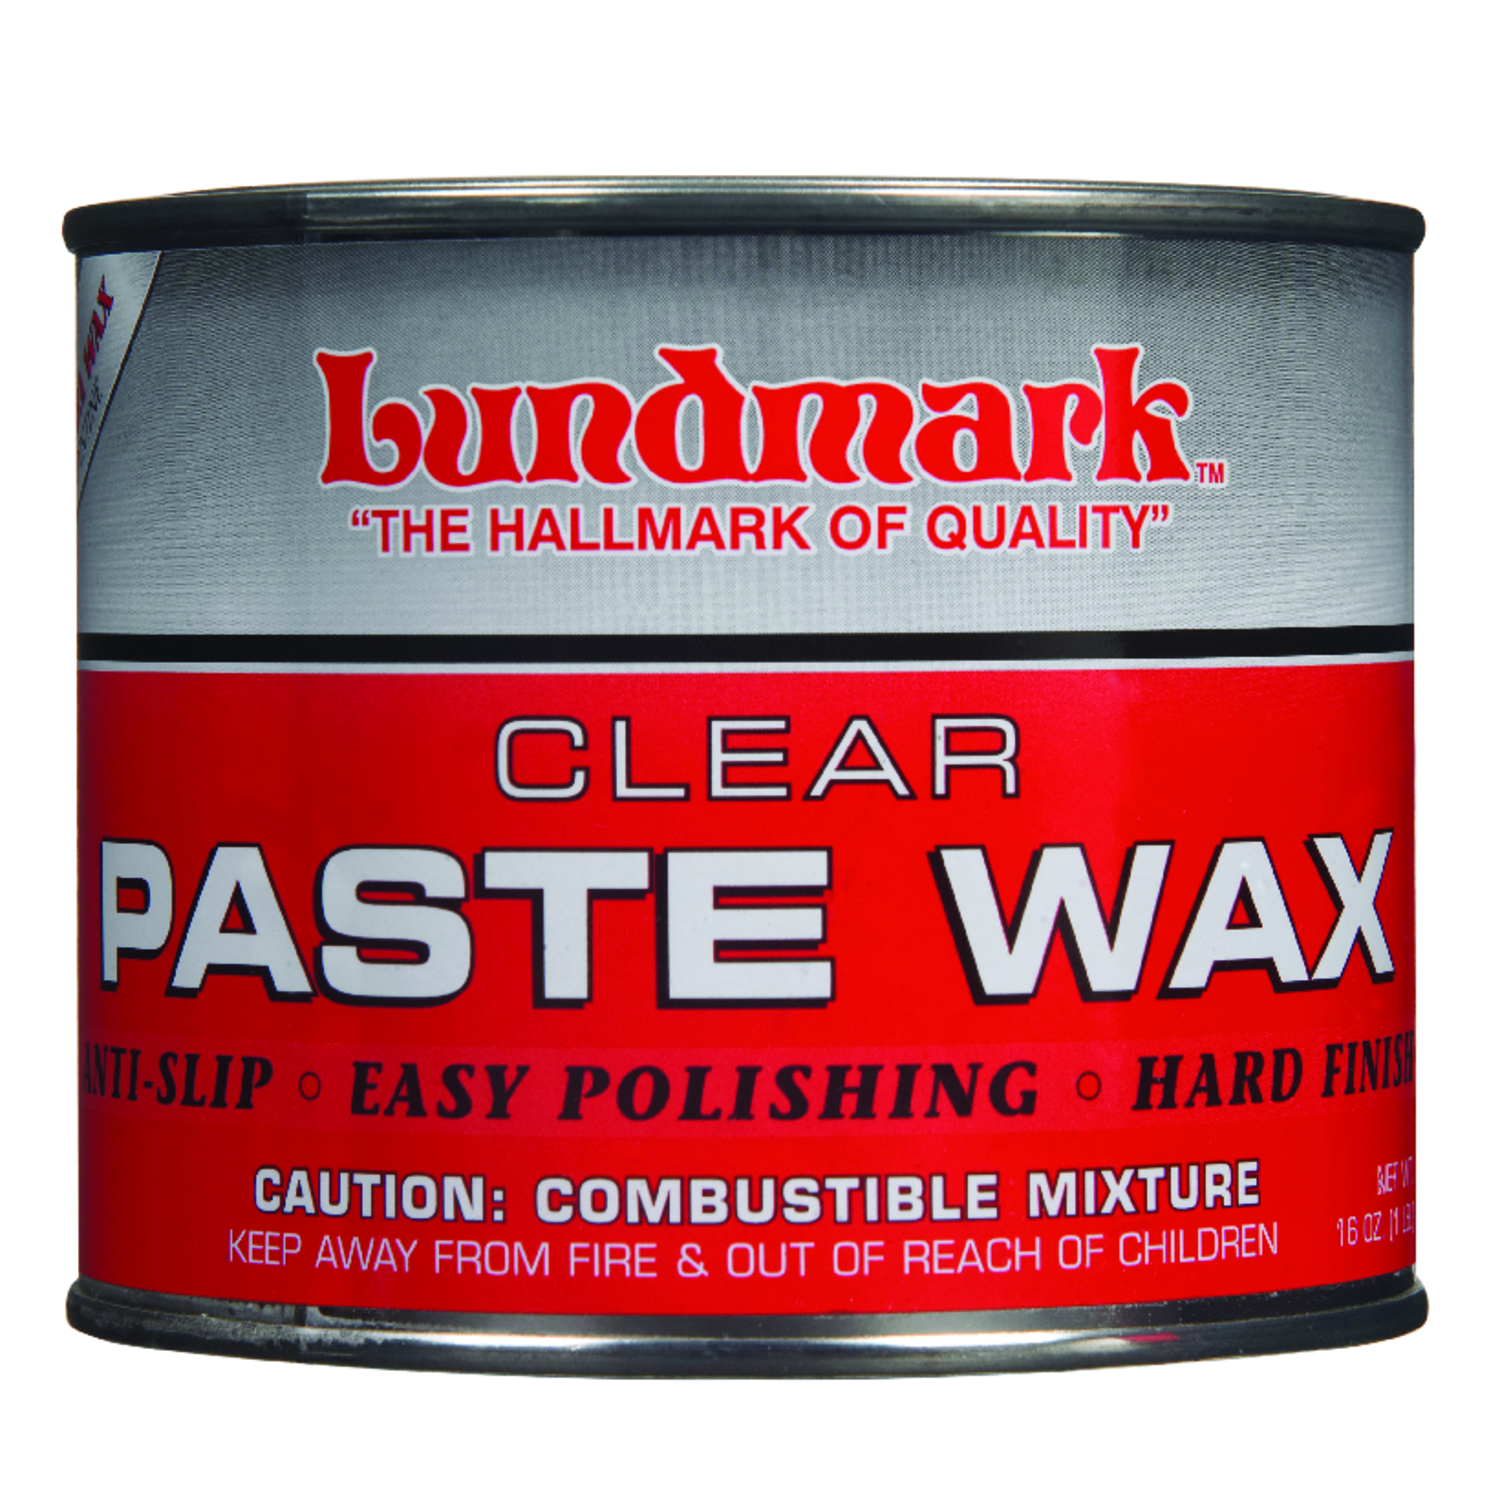 Lundmark  Clear Paste Wax  Hand Rubbed Old World  Floor Wax  Paste  16 oz.